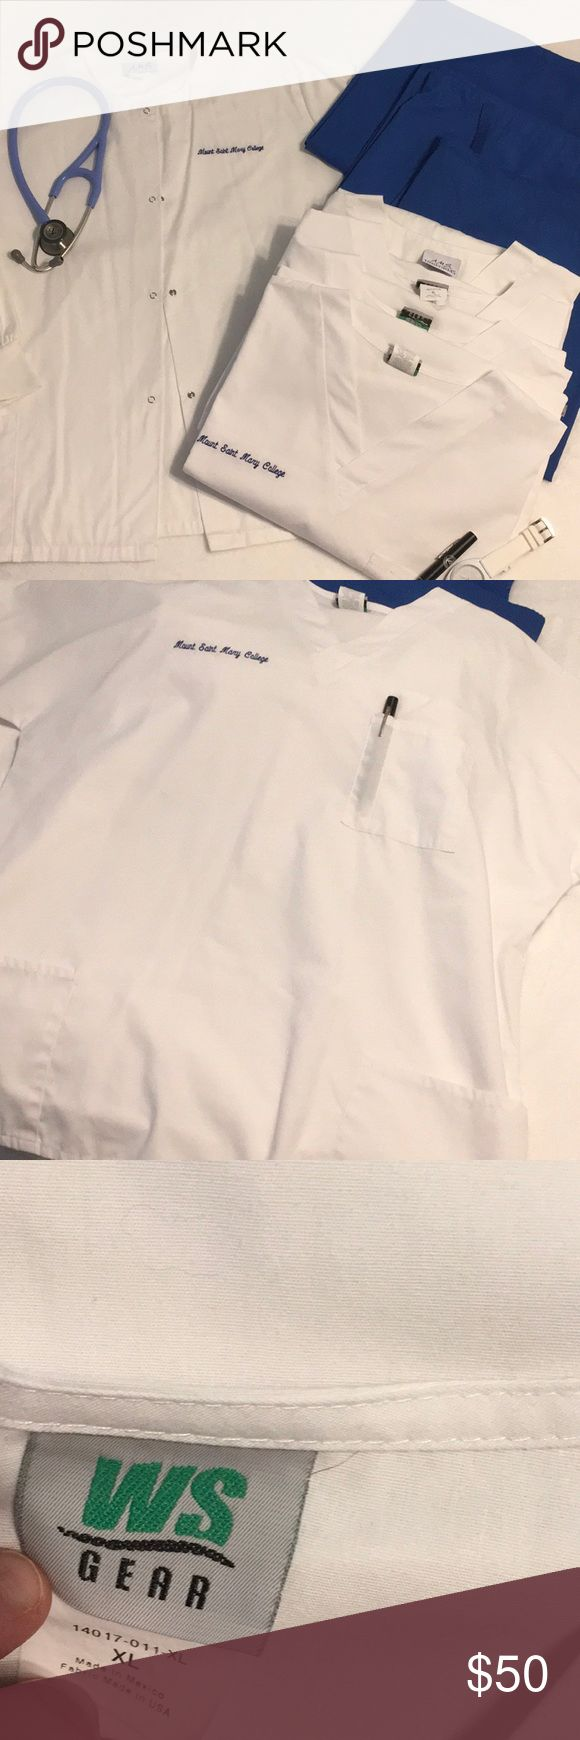 MSMC Clinical Scrub Bundle 👩🏻⚕️ Scrub bundle includes:  One XL white warm up coat  Four XL white front pocket scrub tops  Three XL royal blue scrub pants Any one attending MSMC- Nursing? Purchased full set for clinical rotation, unfortunately I got sick and had to leave program. My loss your gain. Paid 250 for all. Make an offer. Great condition. 👍🏻 (FYI-Stethoscope is not included or for sale!) Tops Tees - Short Sleeve